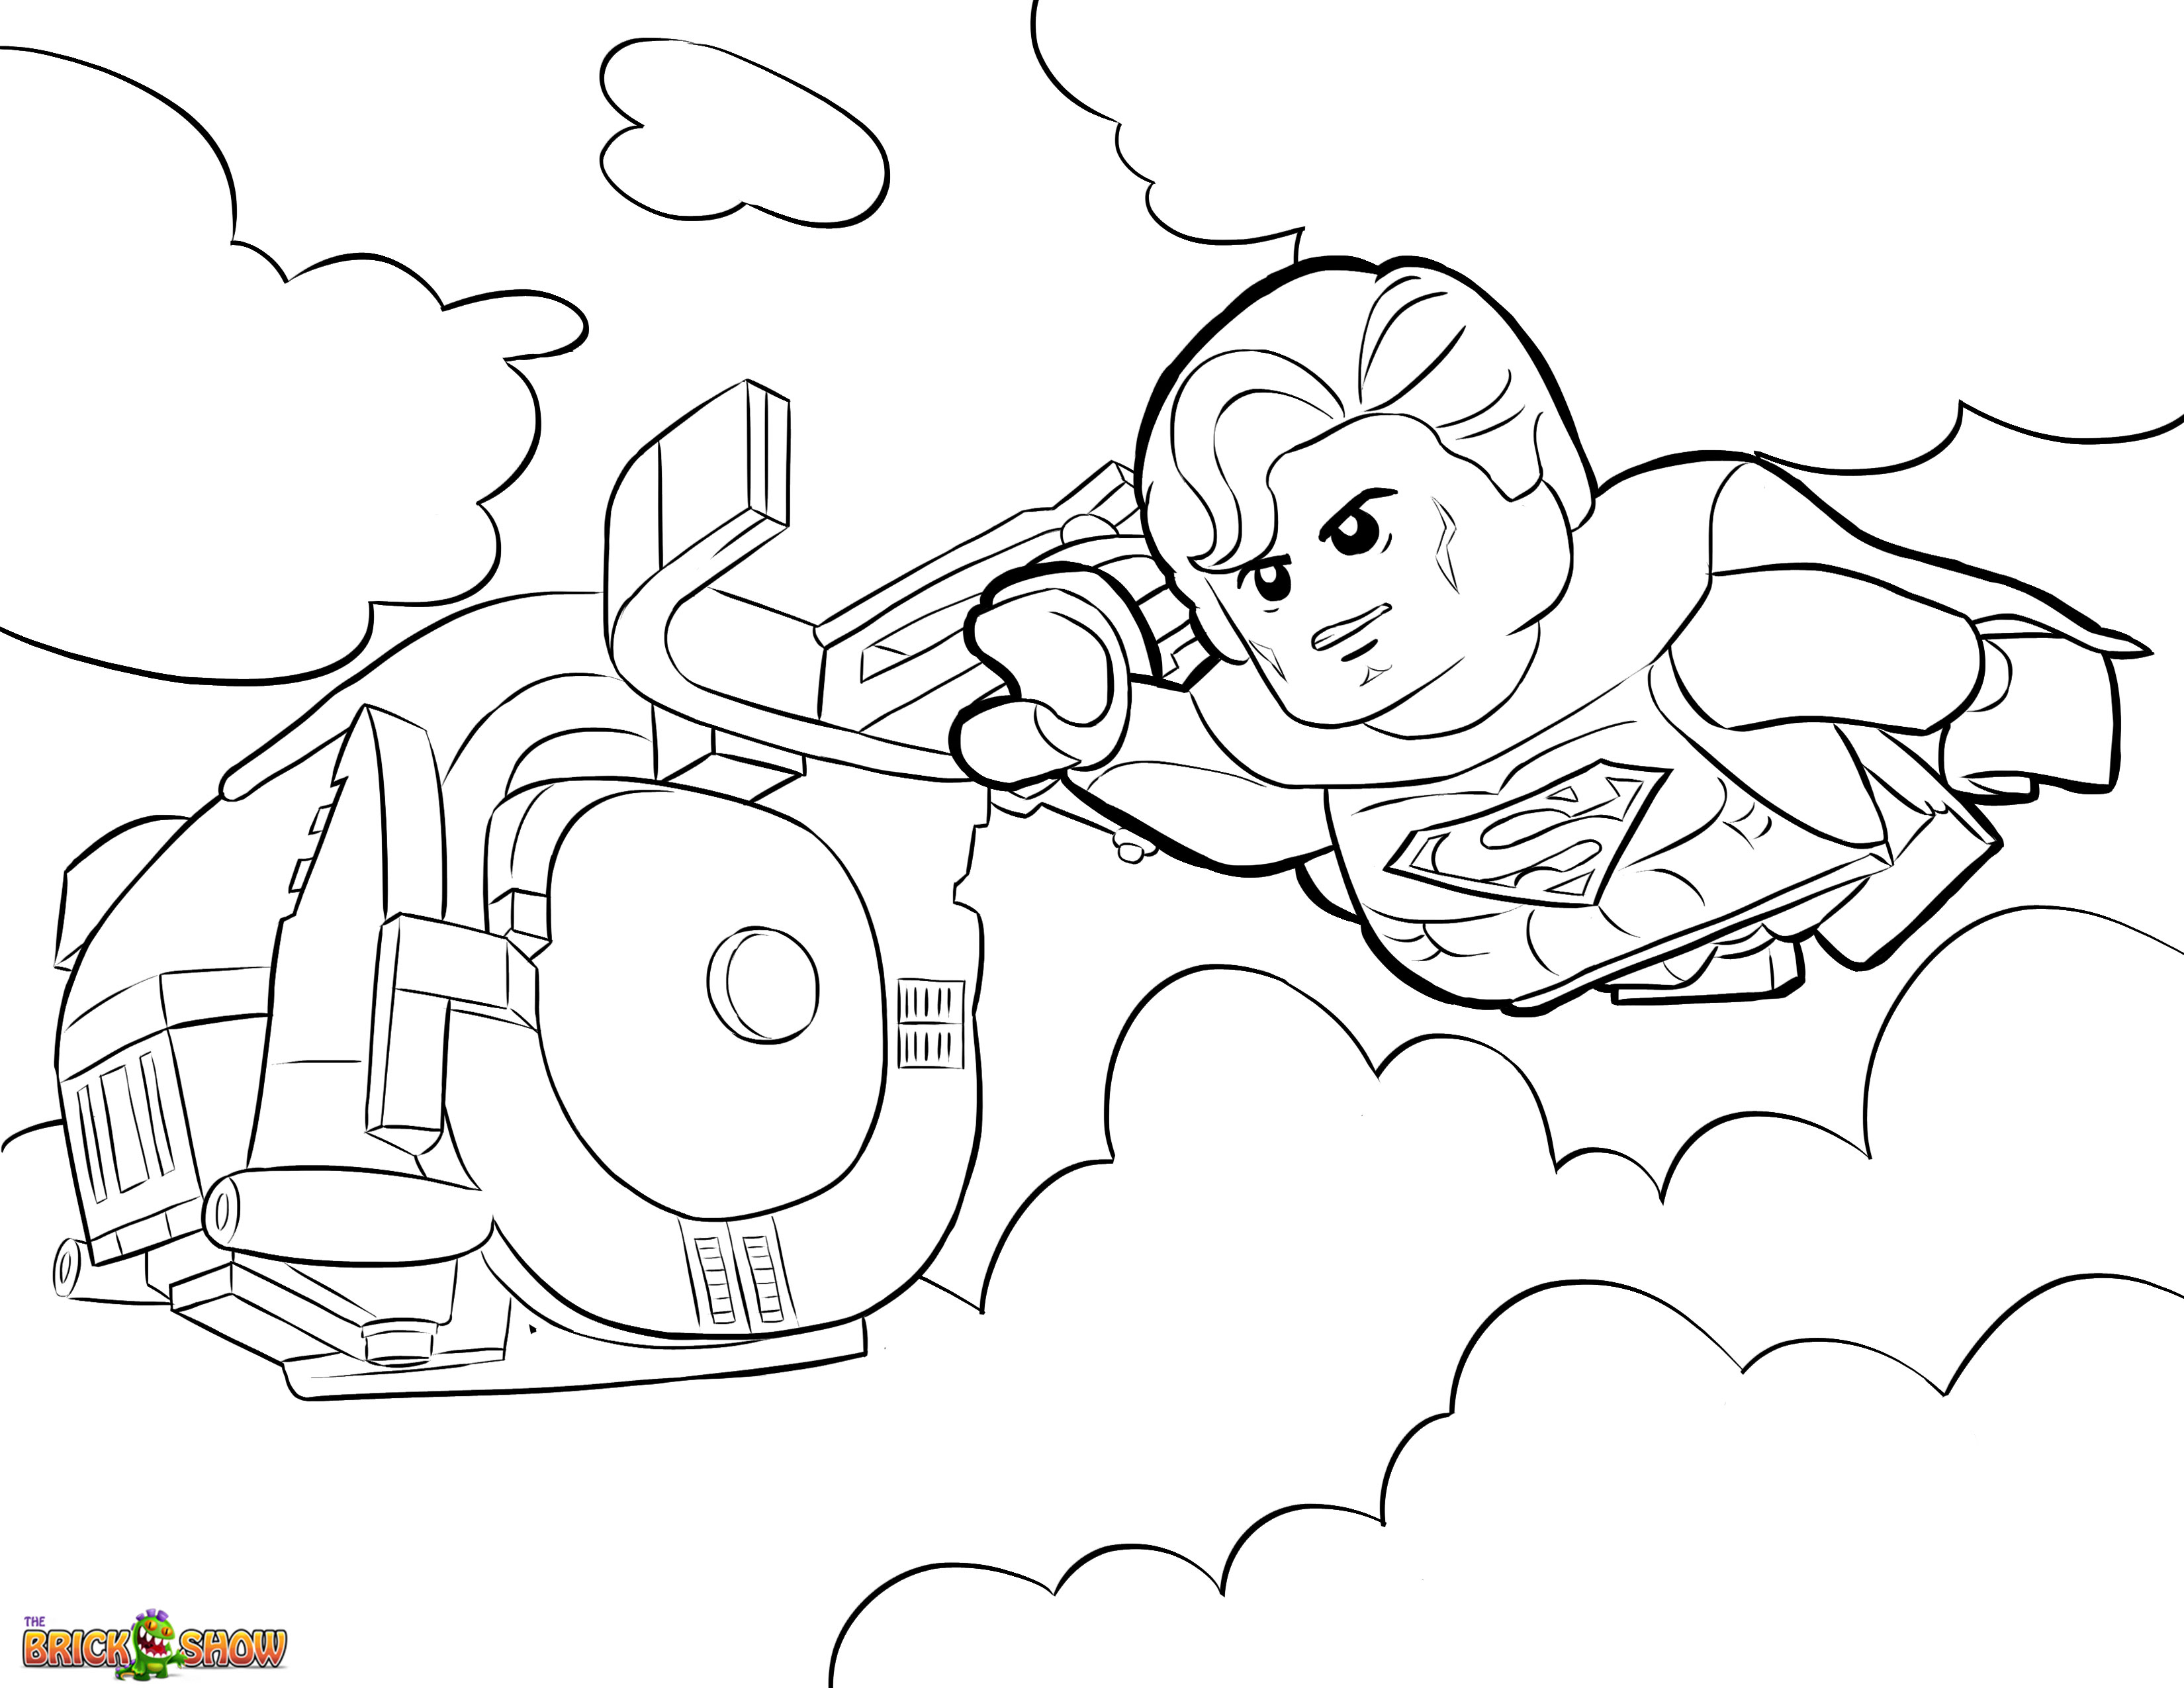 Superman clipart coloring sheet Printable Page With superman Coloring